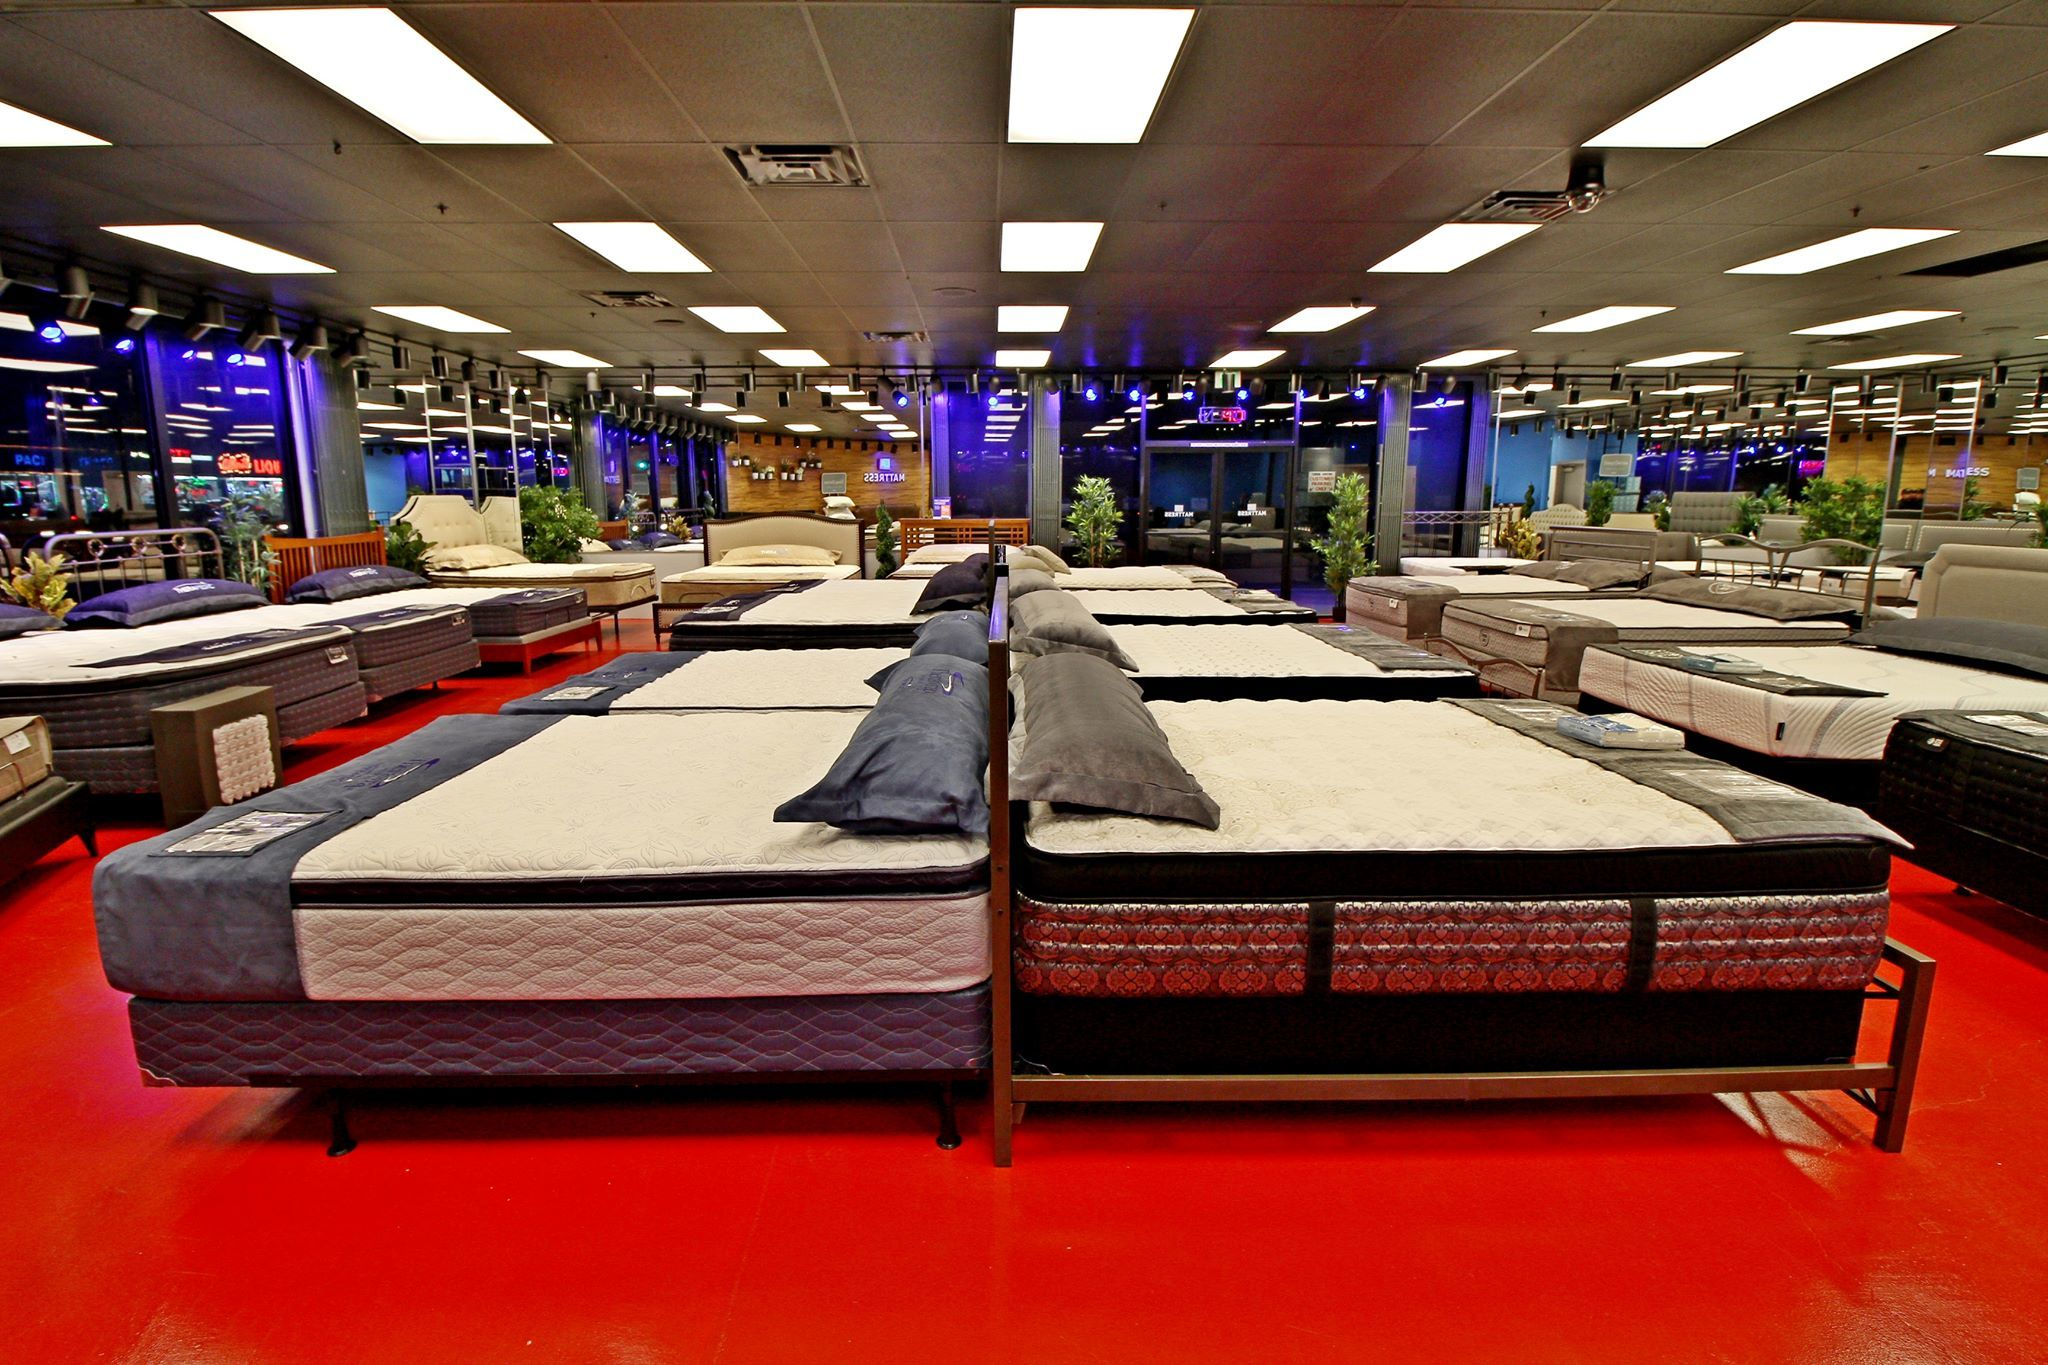 Los Angeles Mattress Stores – Natural Vita Talalay Latex Mattress Store In Los Angeles California